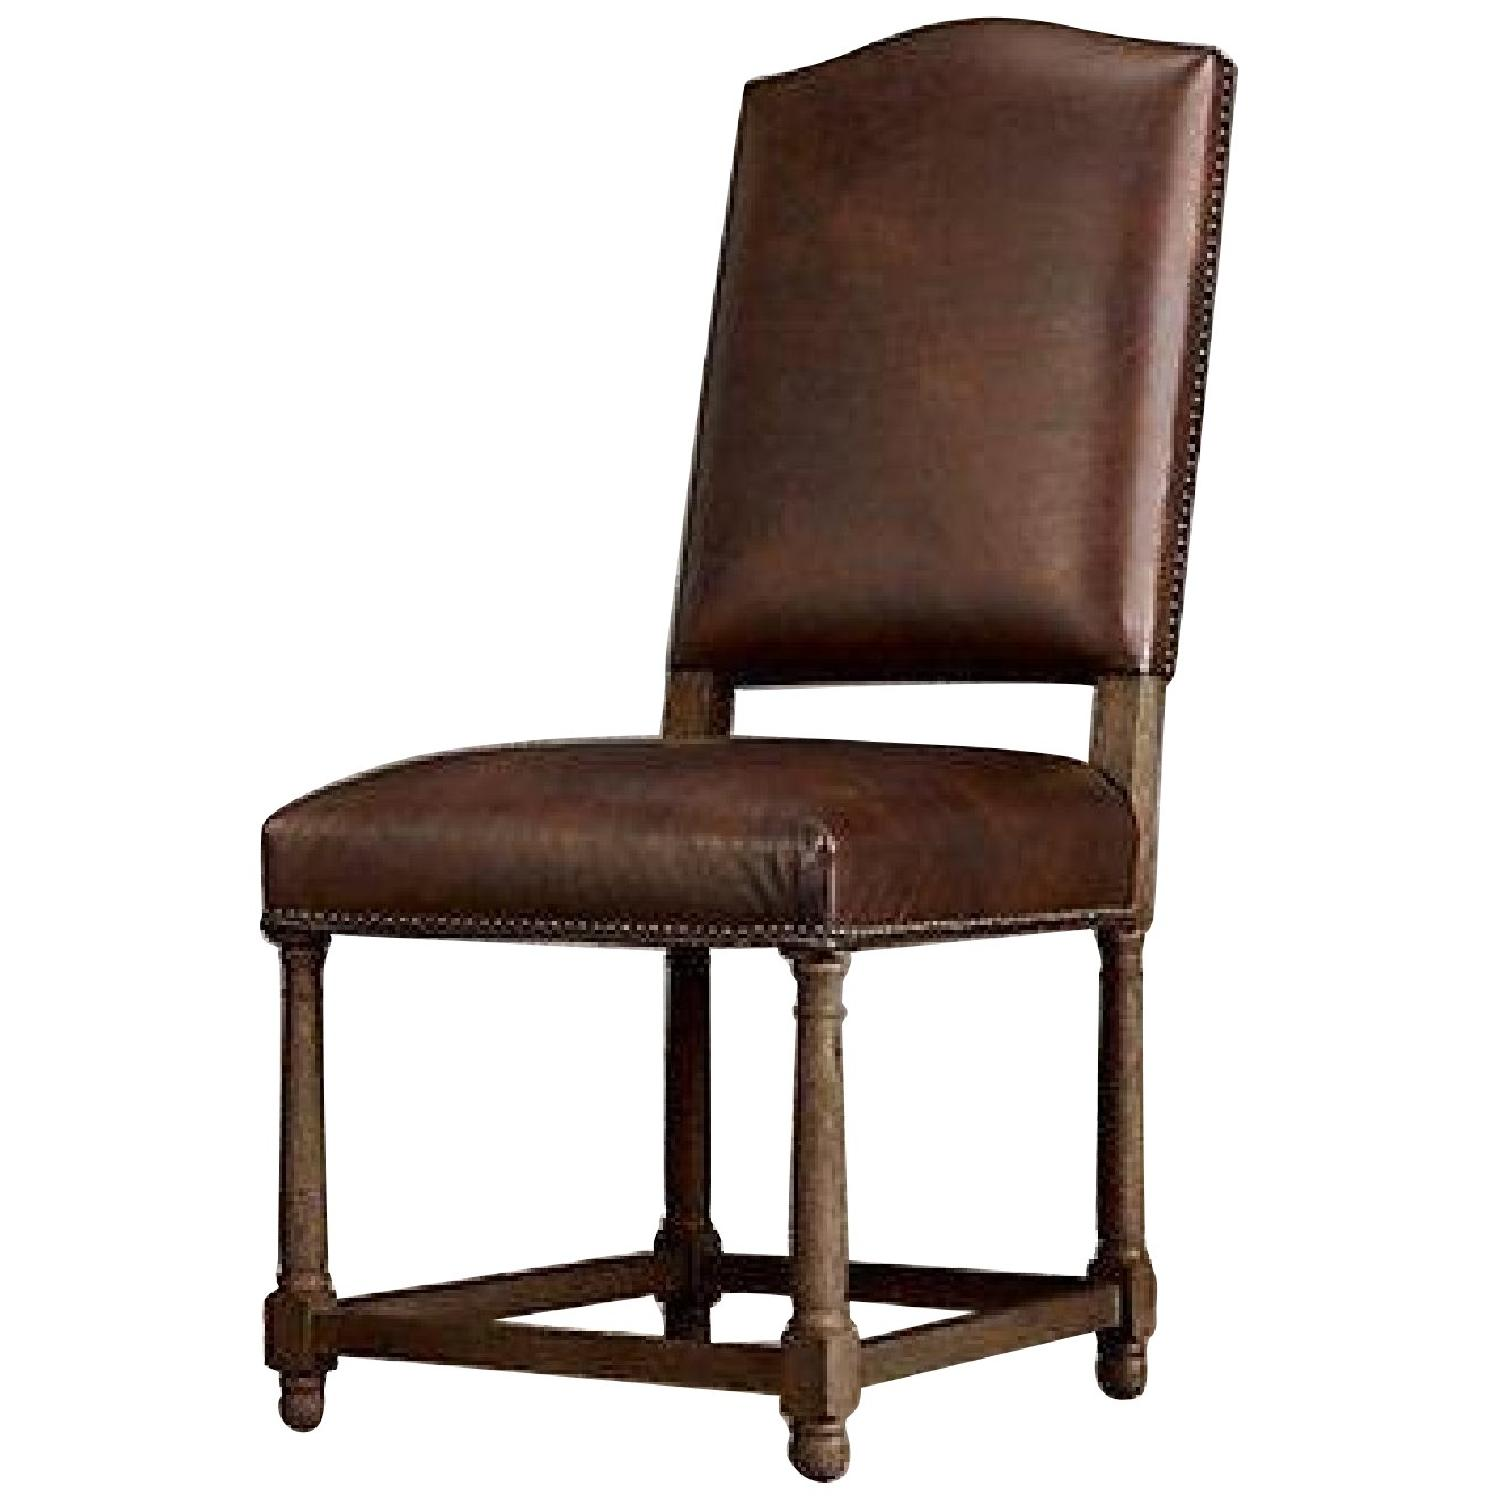 Restoration Hardware Dining Chairs Restoration Hardware Leather Dining Chairs